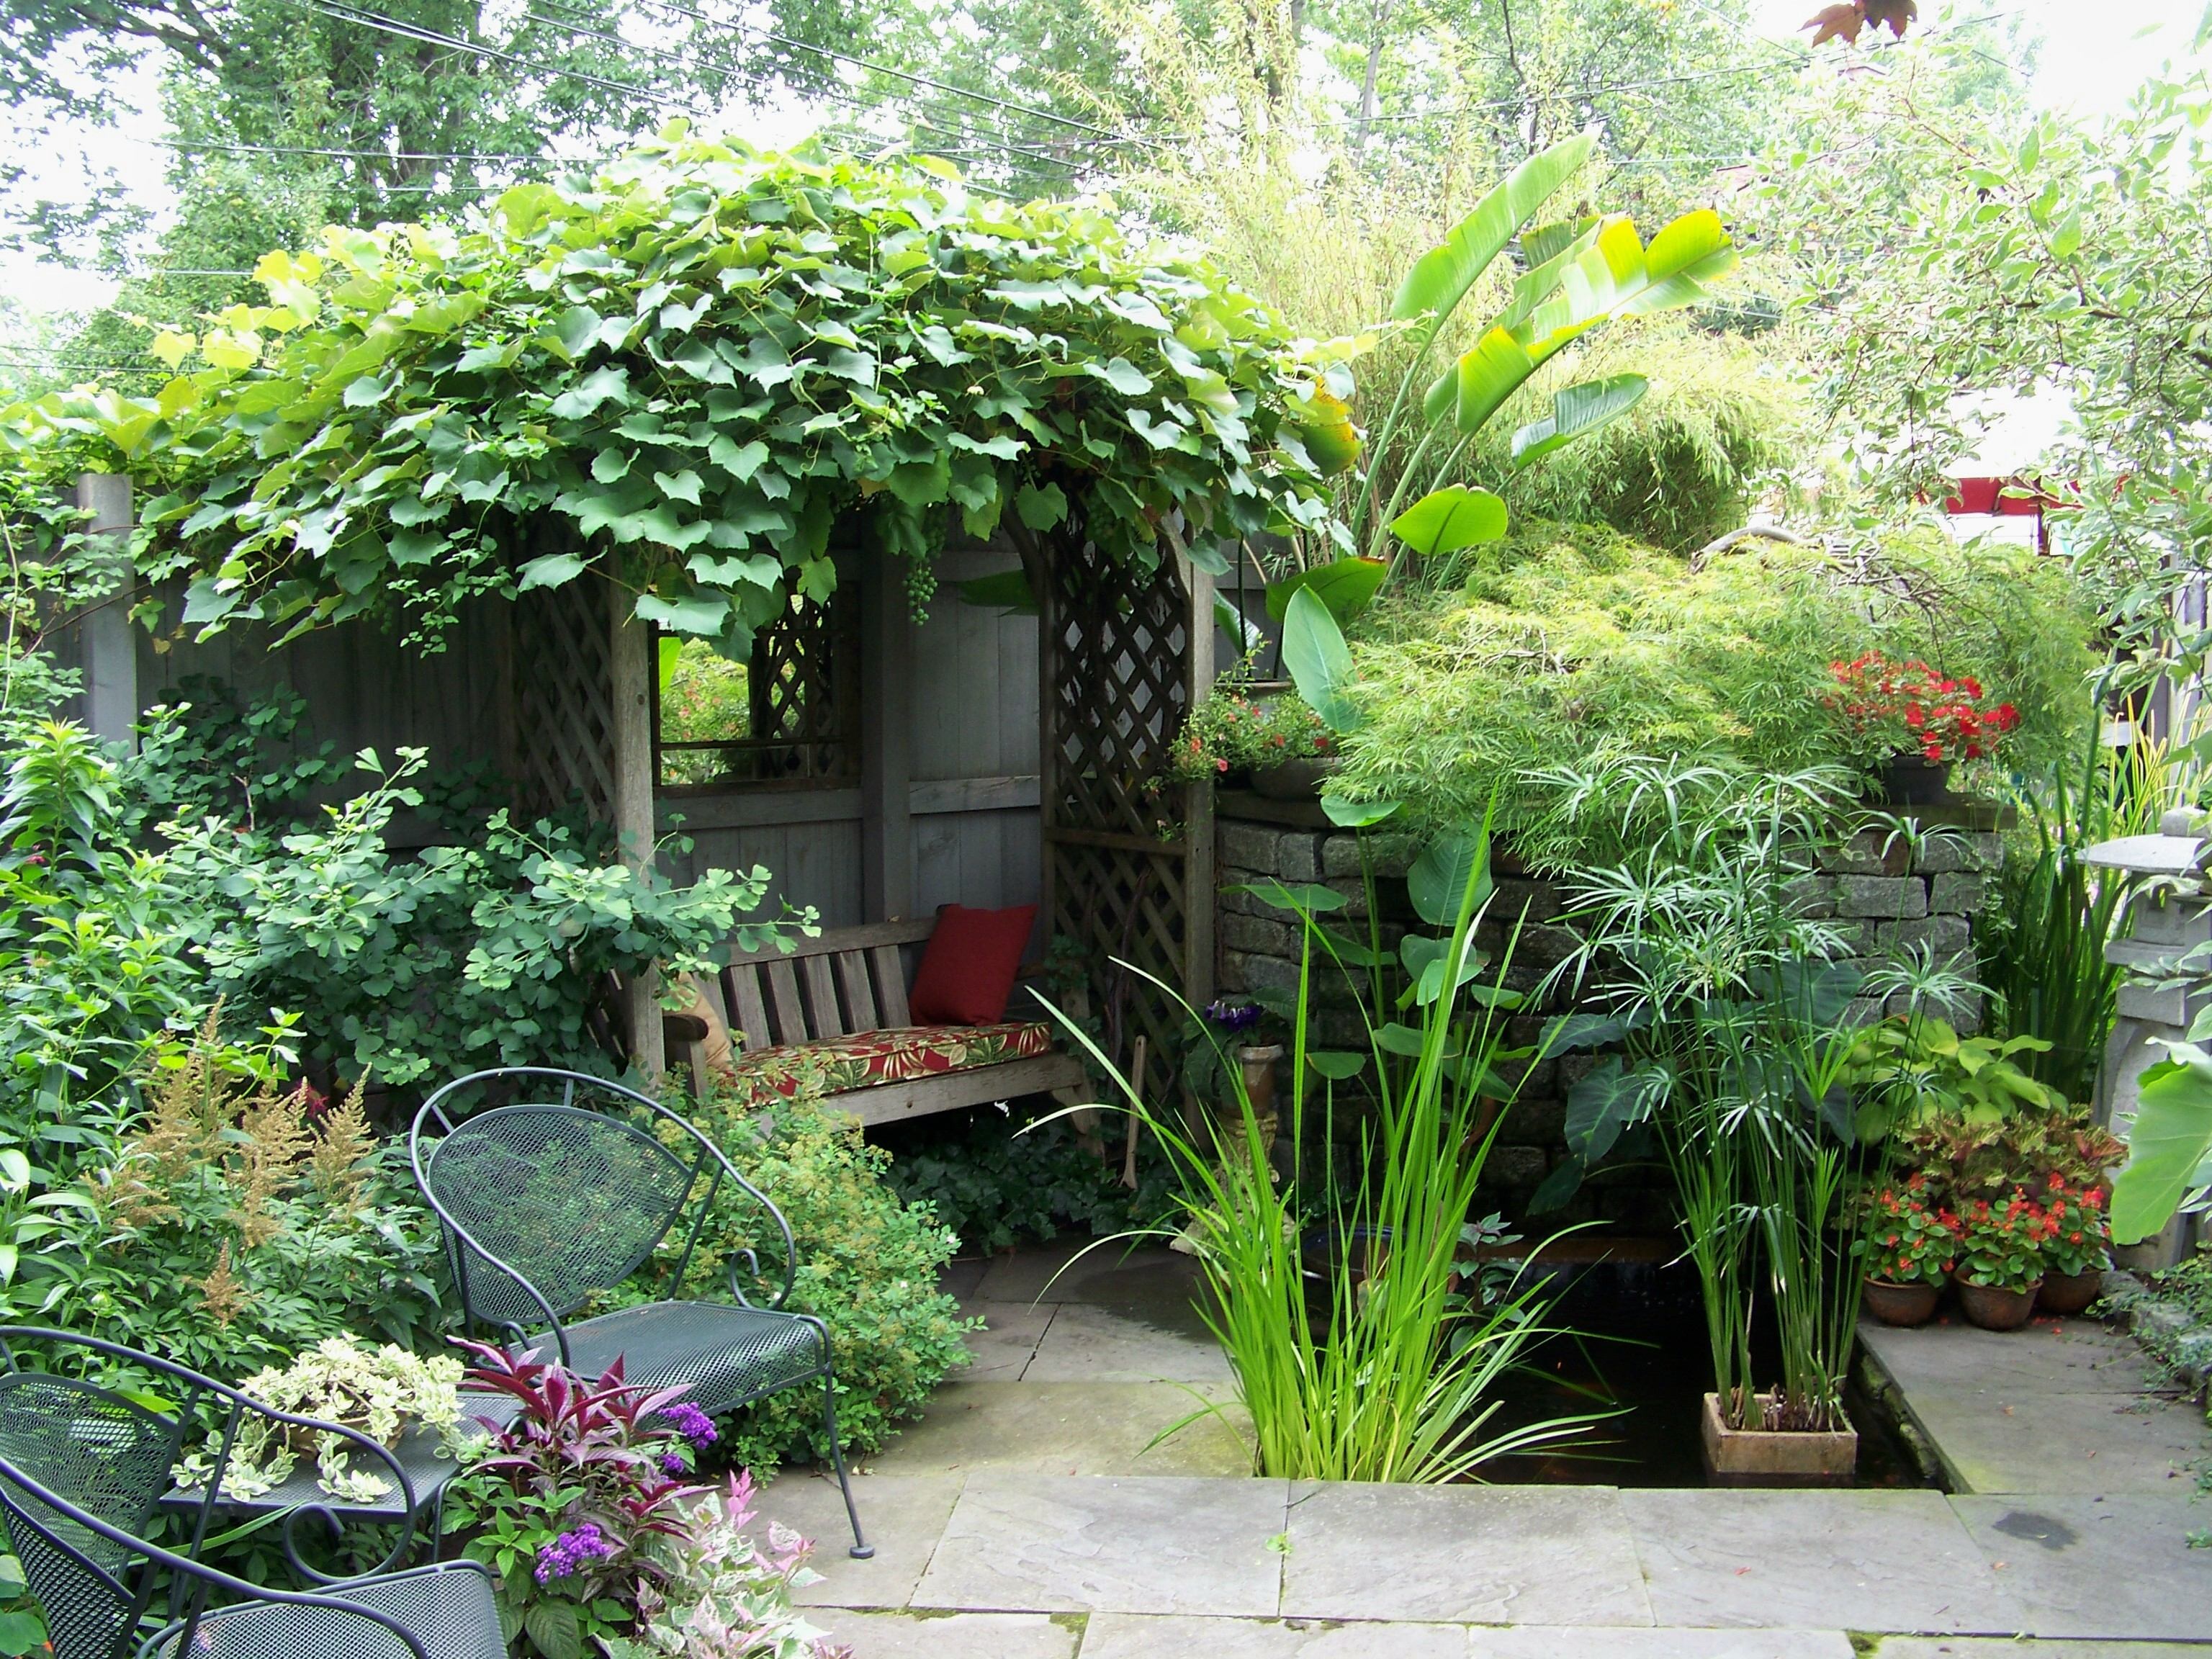 5 amazing small yard garden ideas nlc loans for Small backyard garden